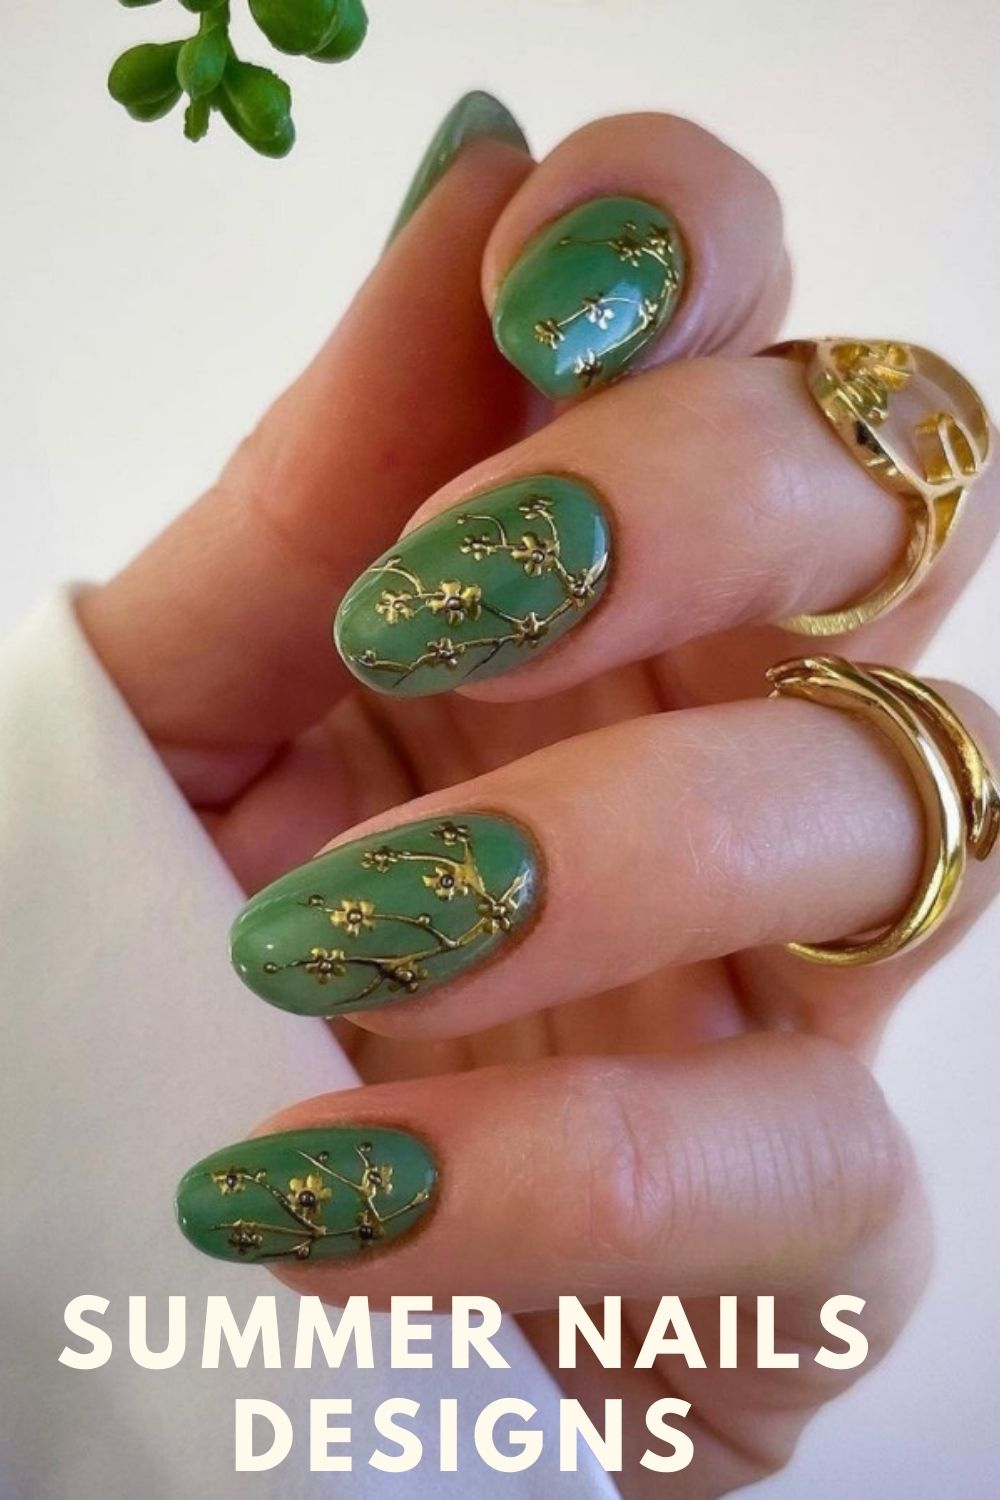 Green short almond nails for summer